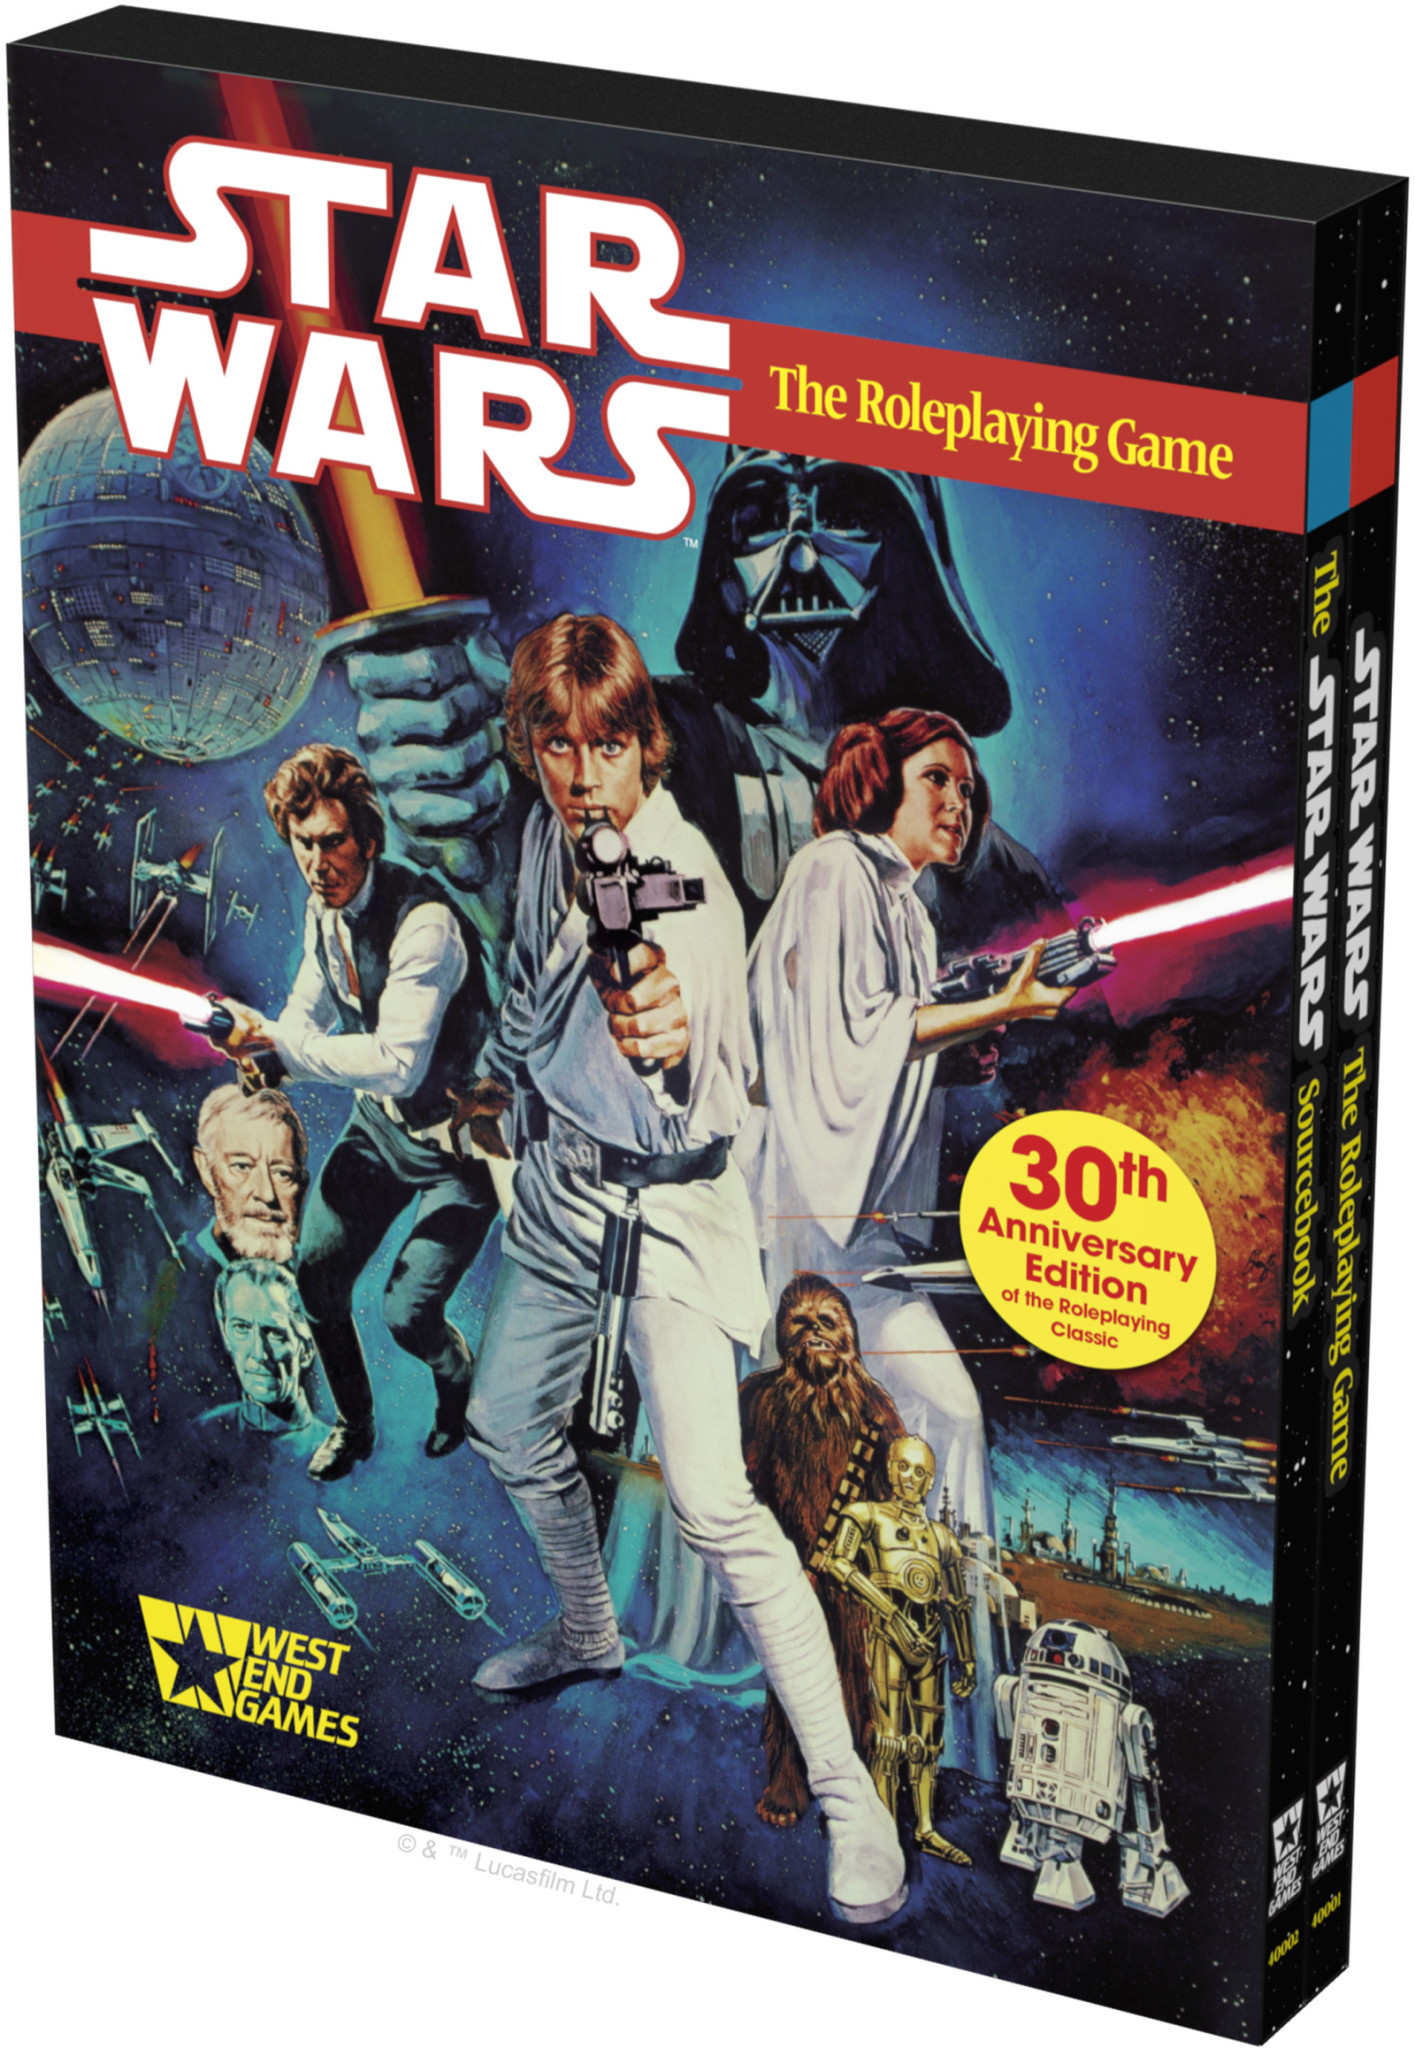 Star Wars™: The Roleplaying Game 30th Anniversary Edition